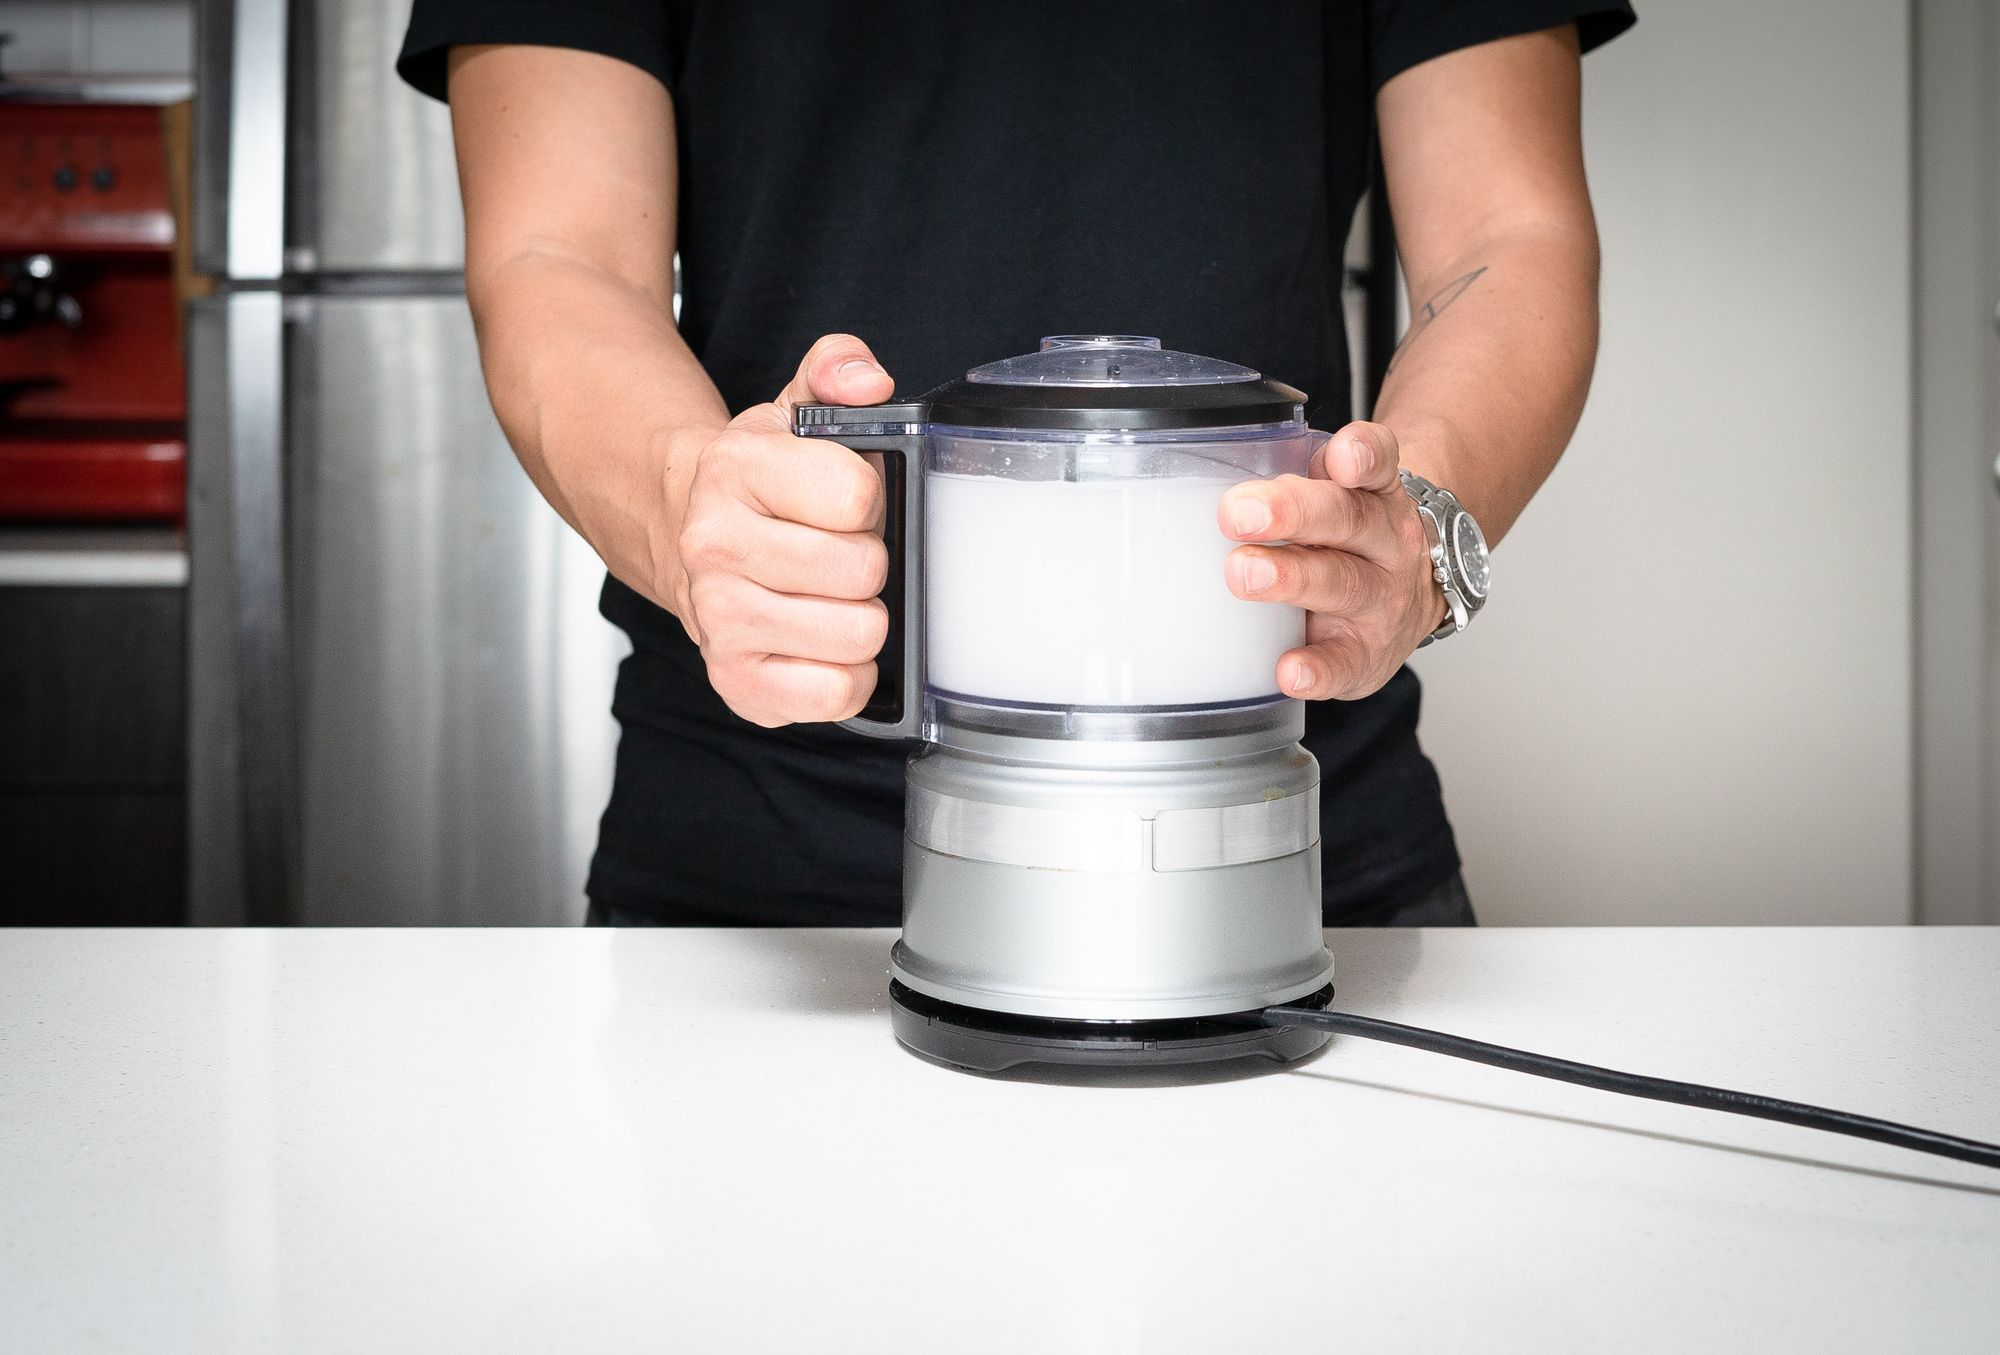 blending water and sugar together